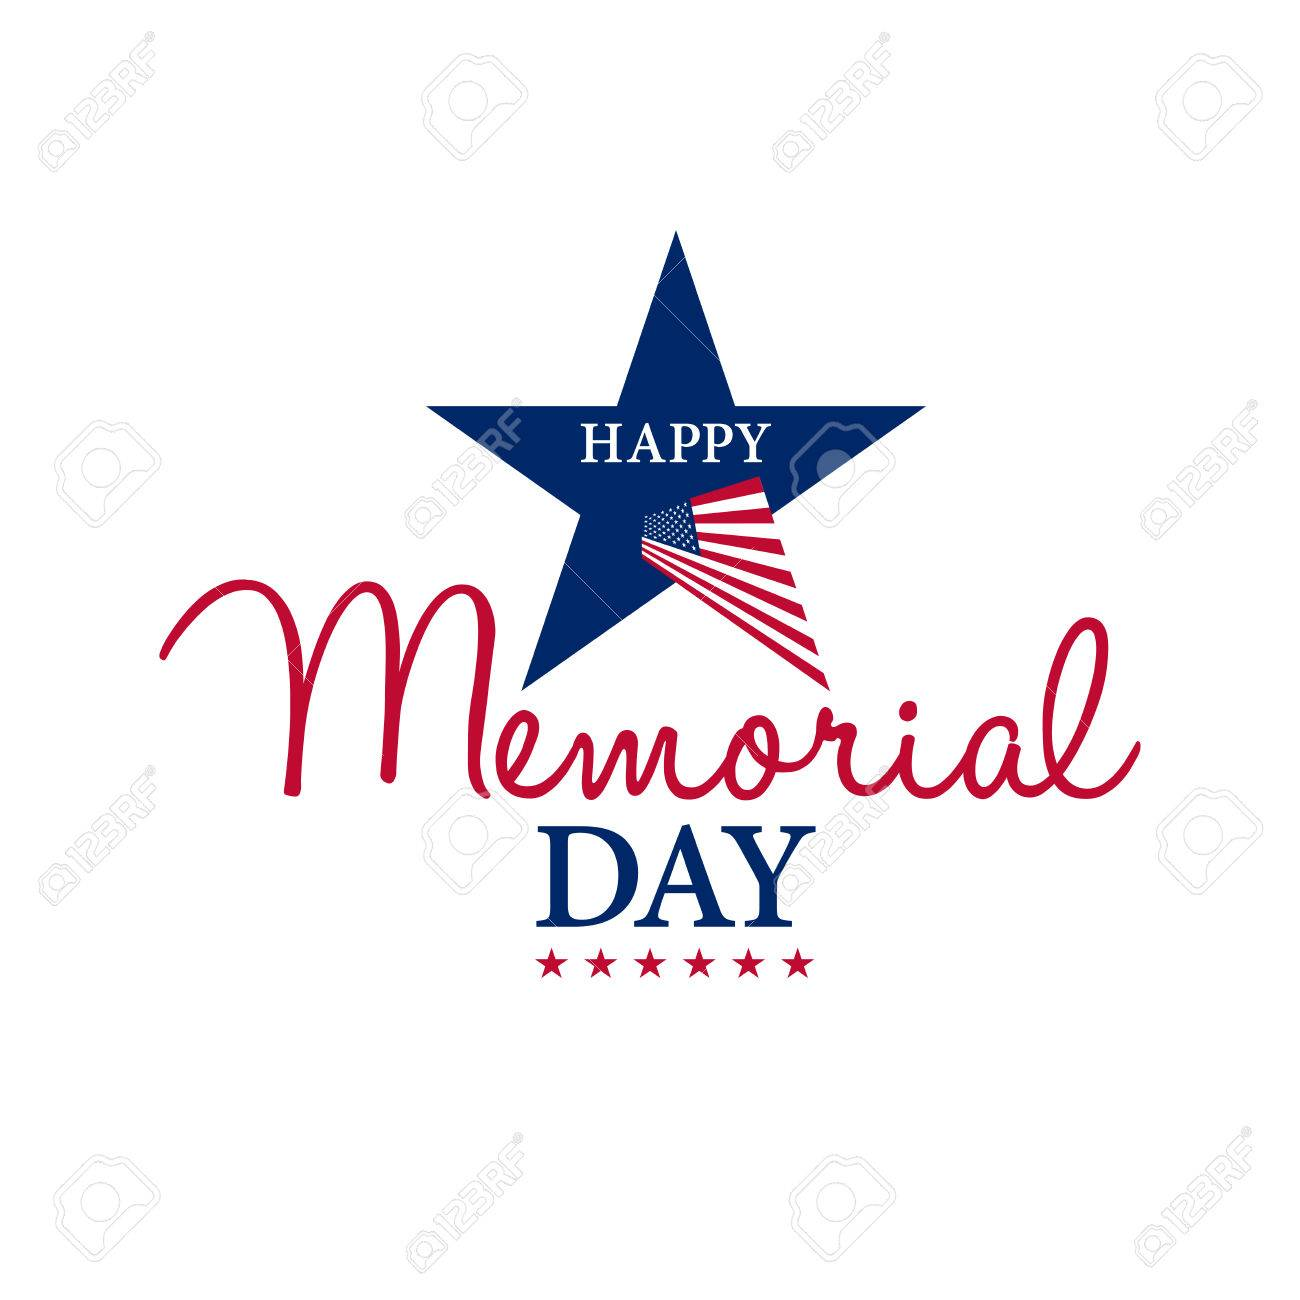 happy memorial national american day card or background with